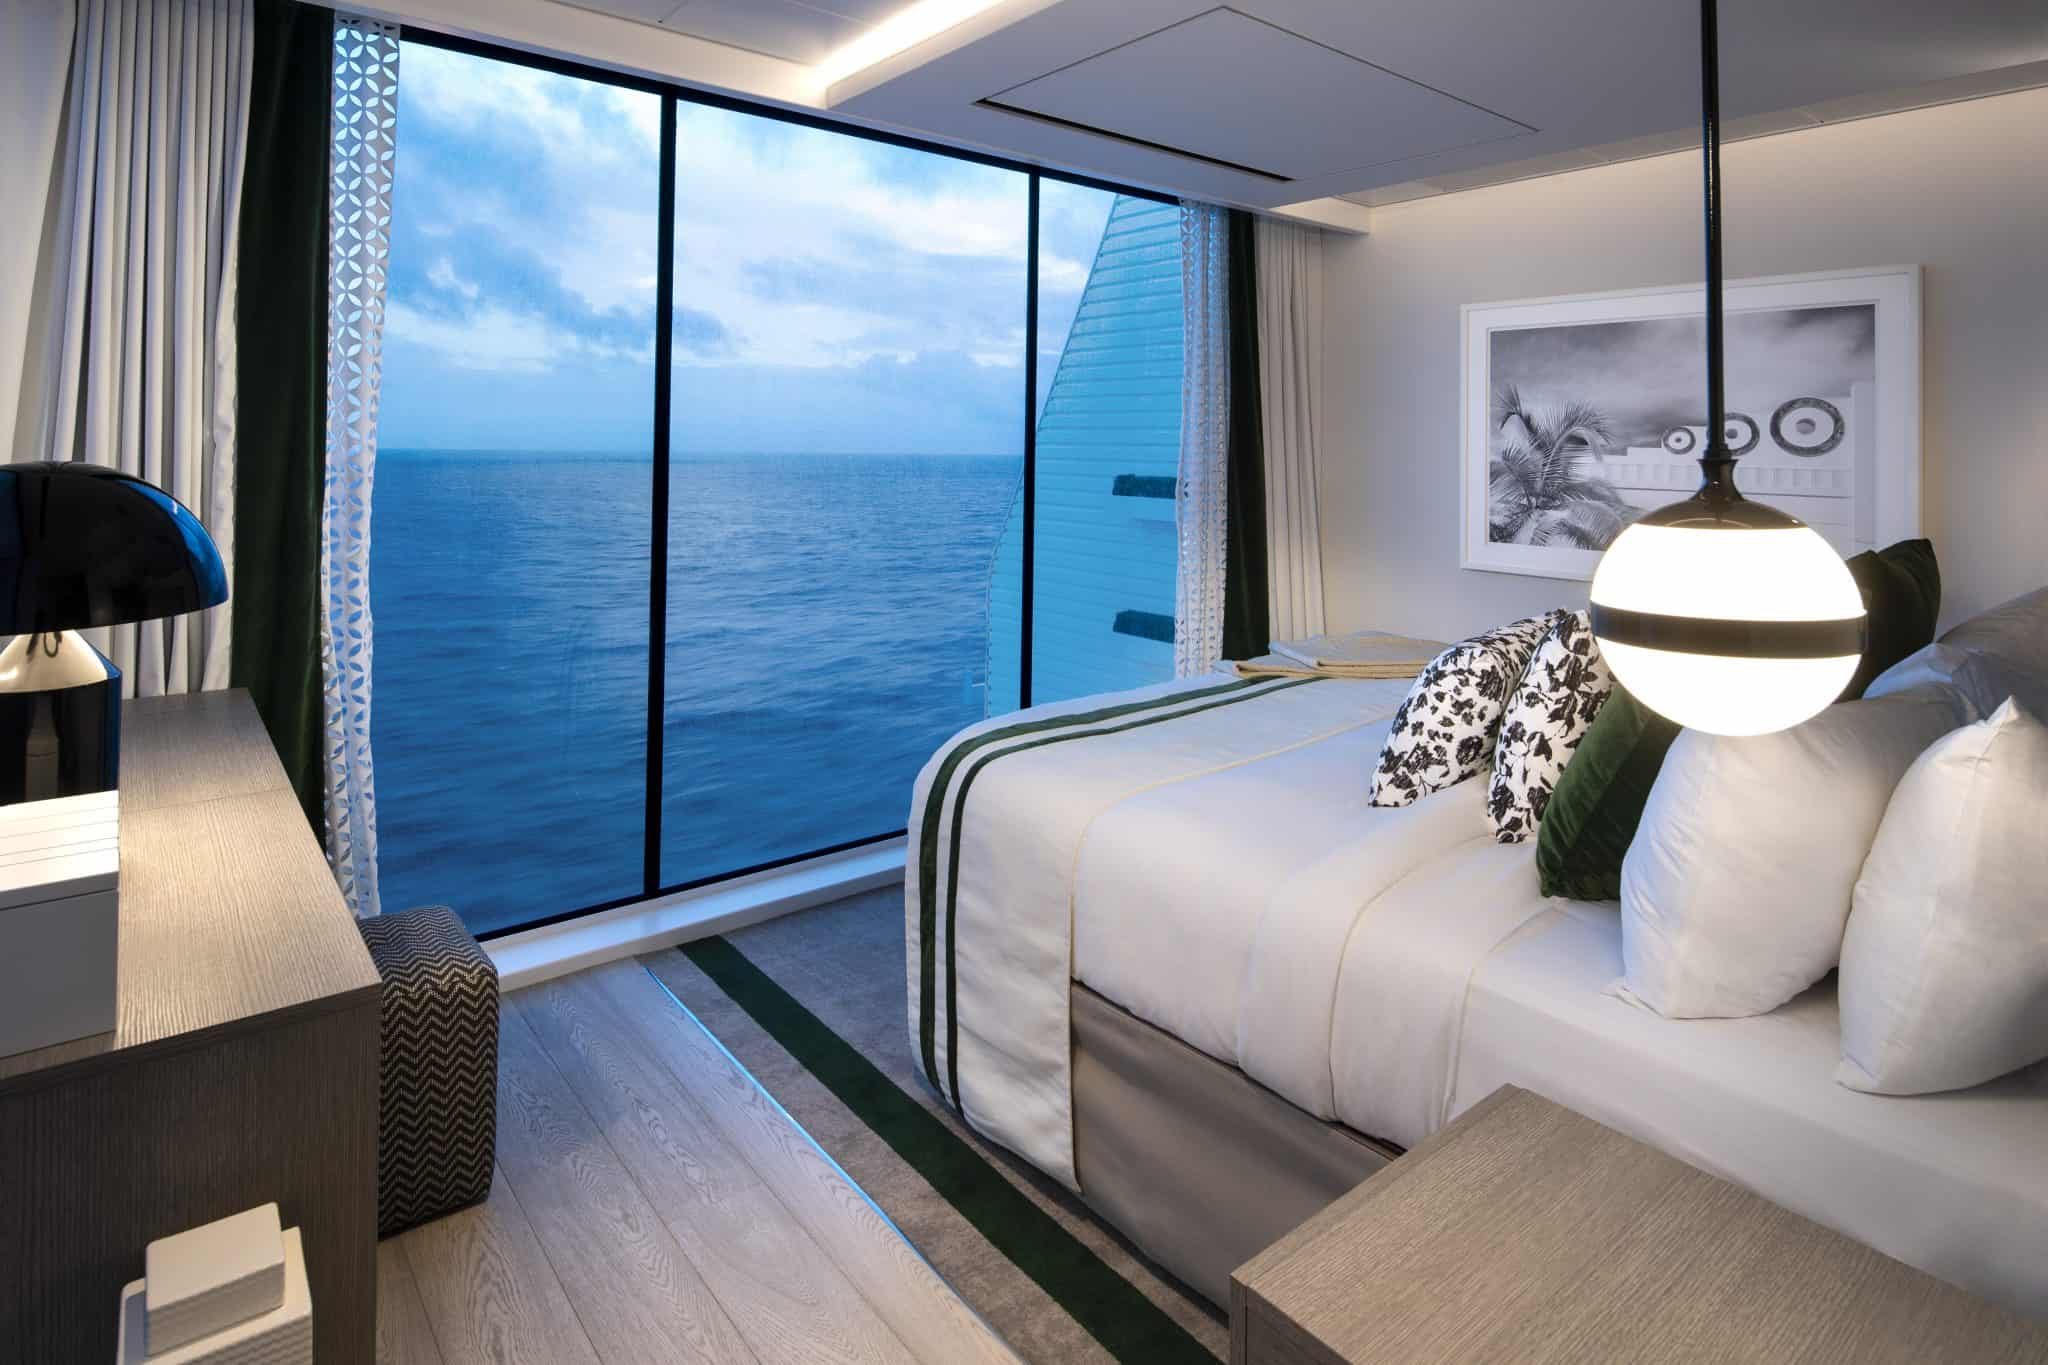 Game of Thrones Cruise Experience Staterooms